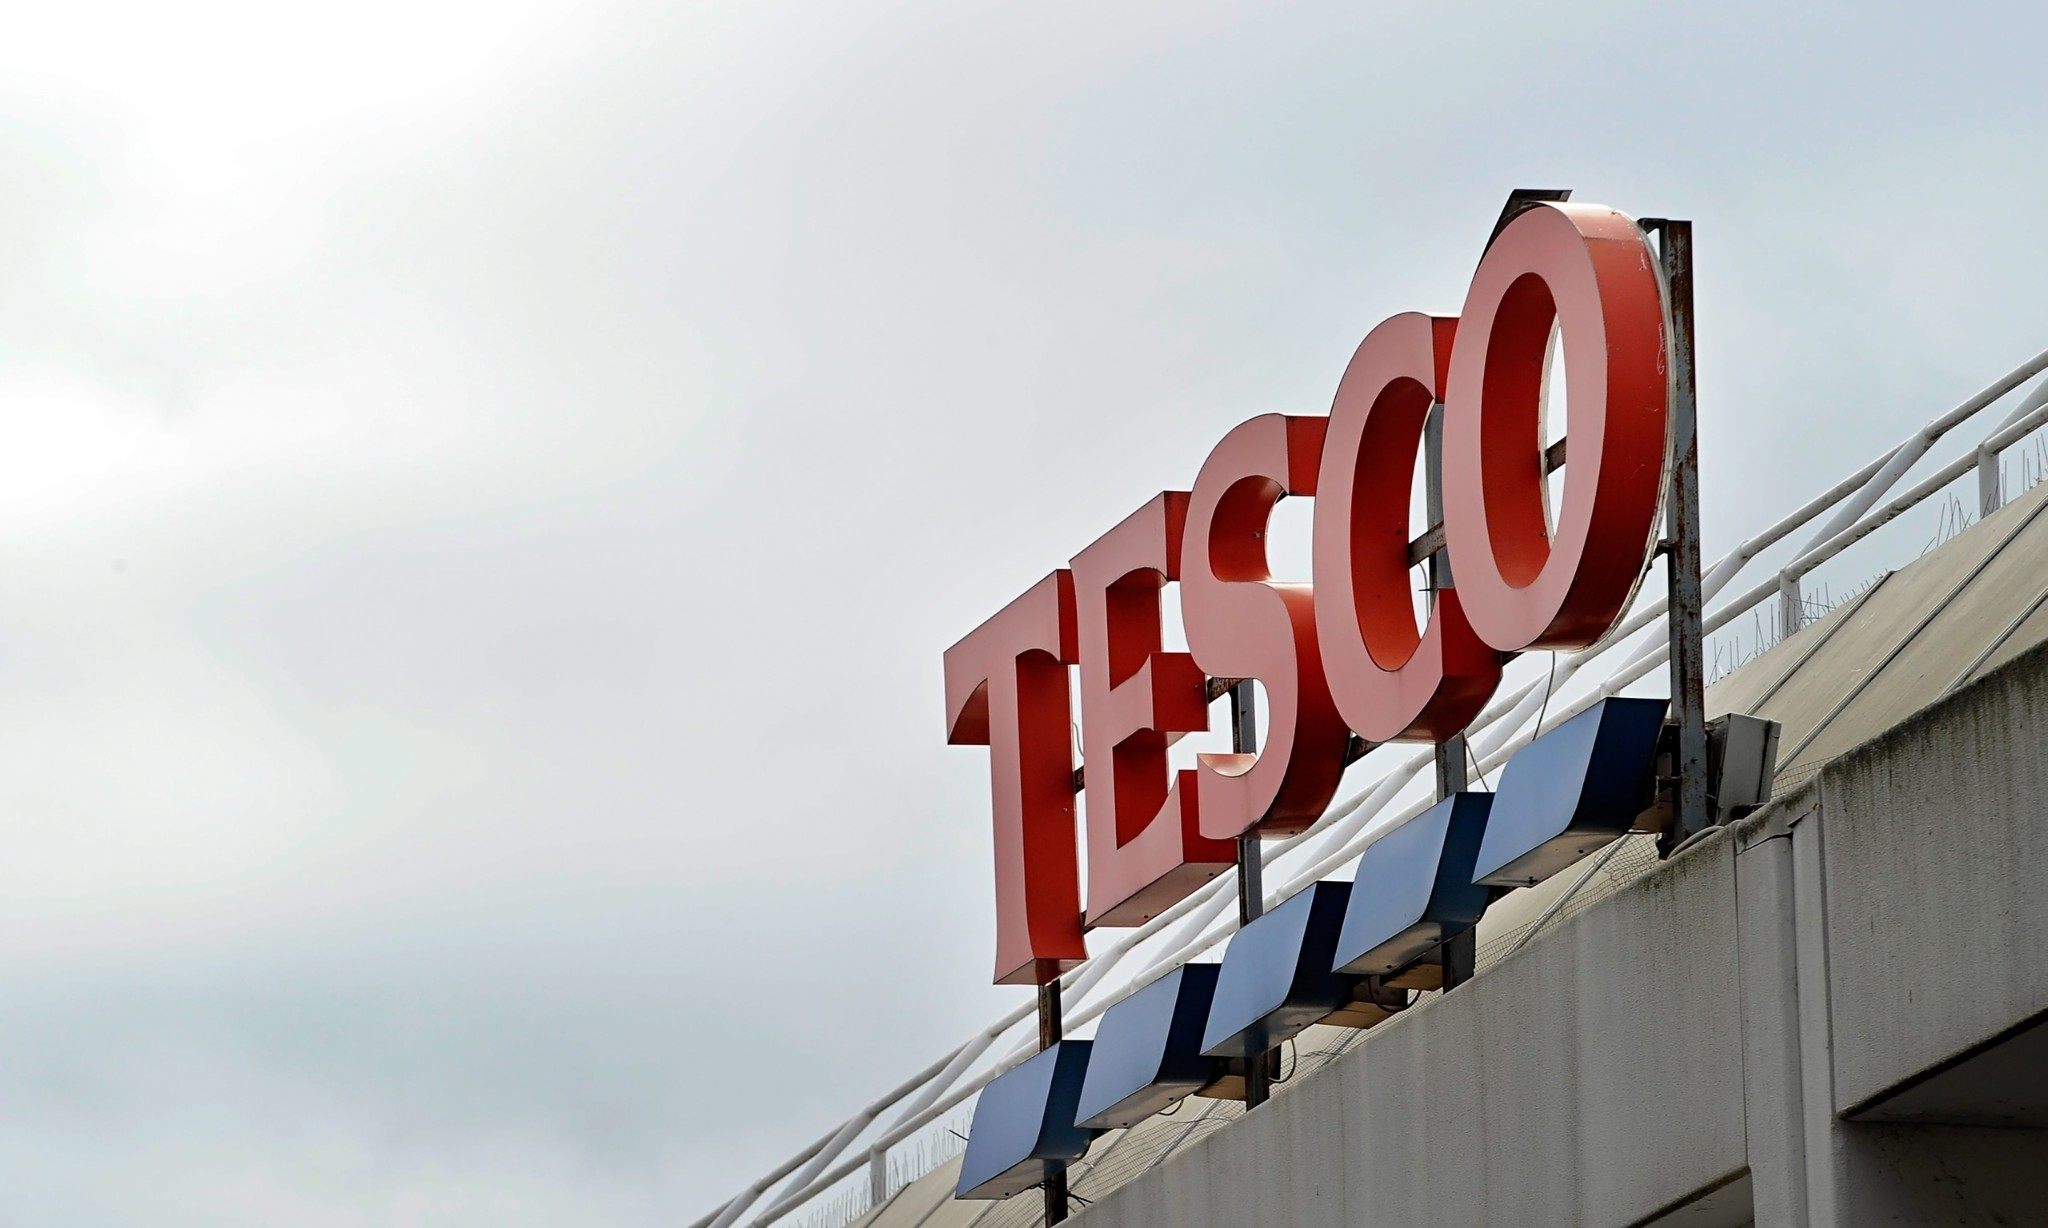 Tesco's accounts: watchdog weighing up whether full investigation needed